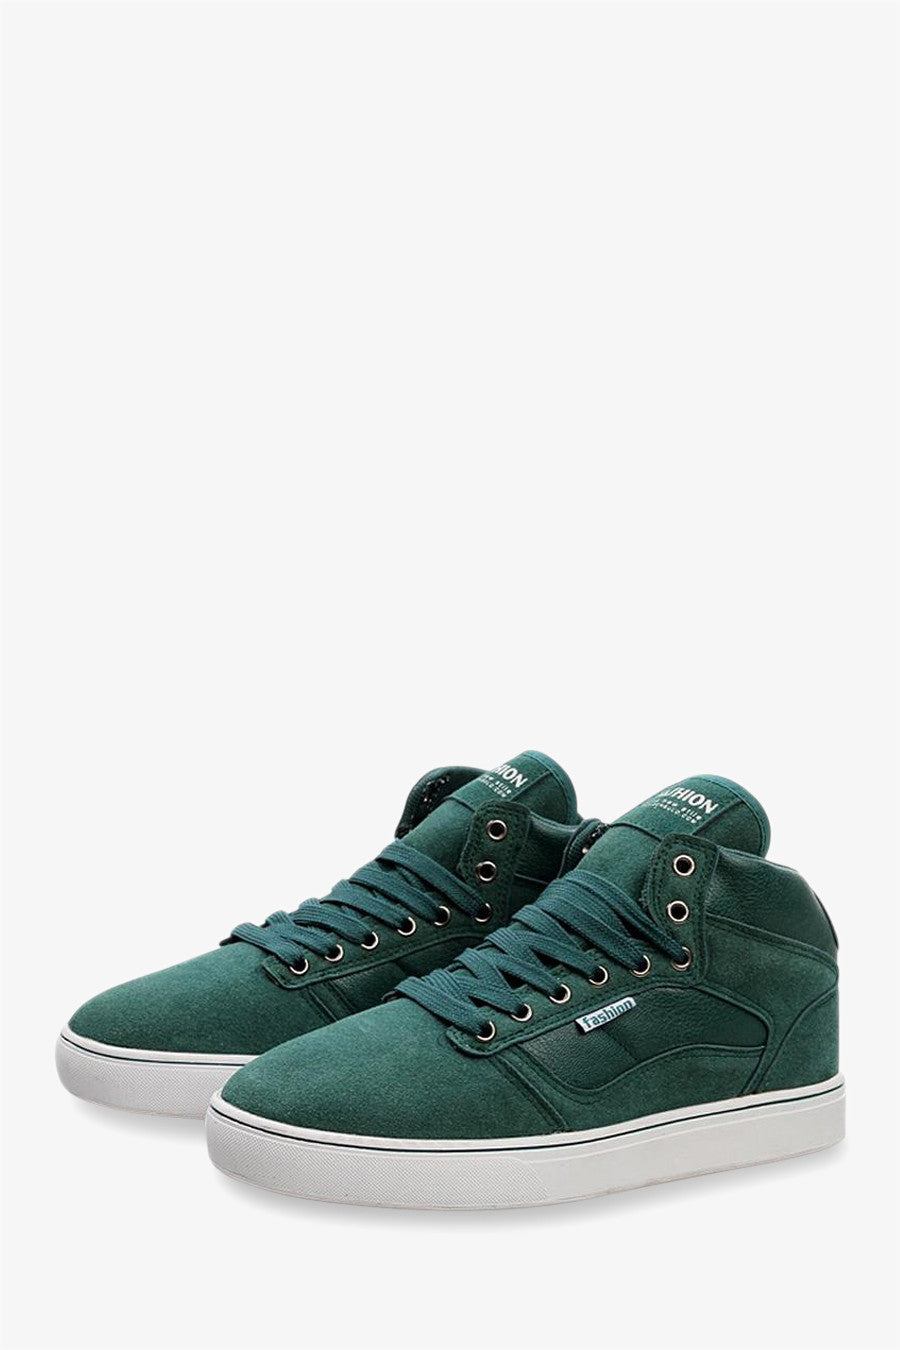 High Top Suede Sneakers In Green